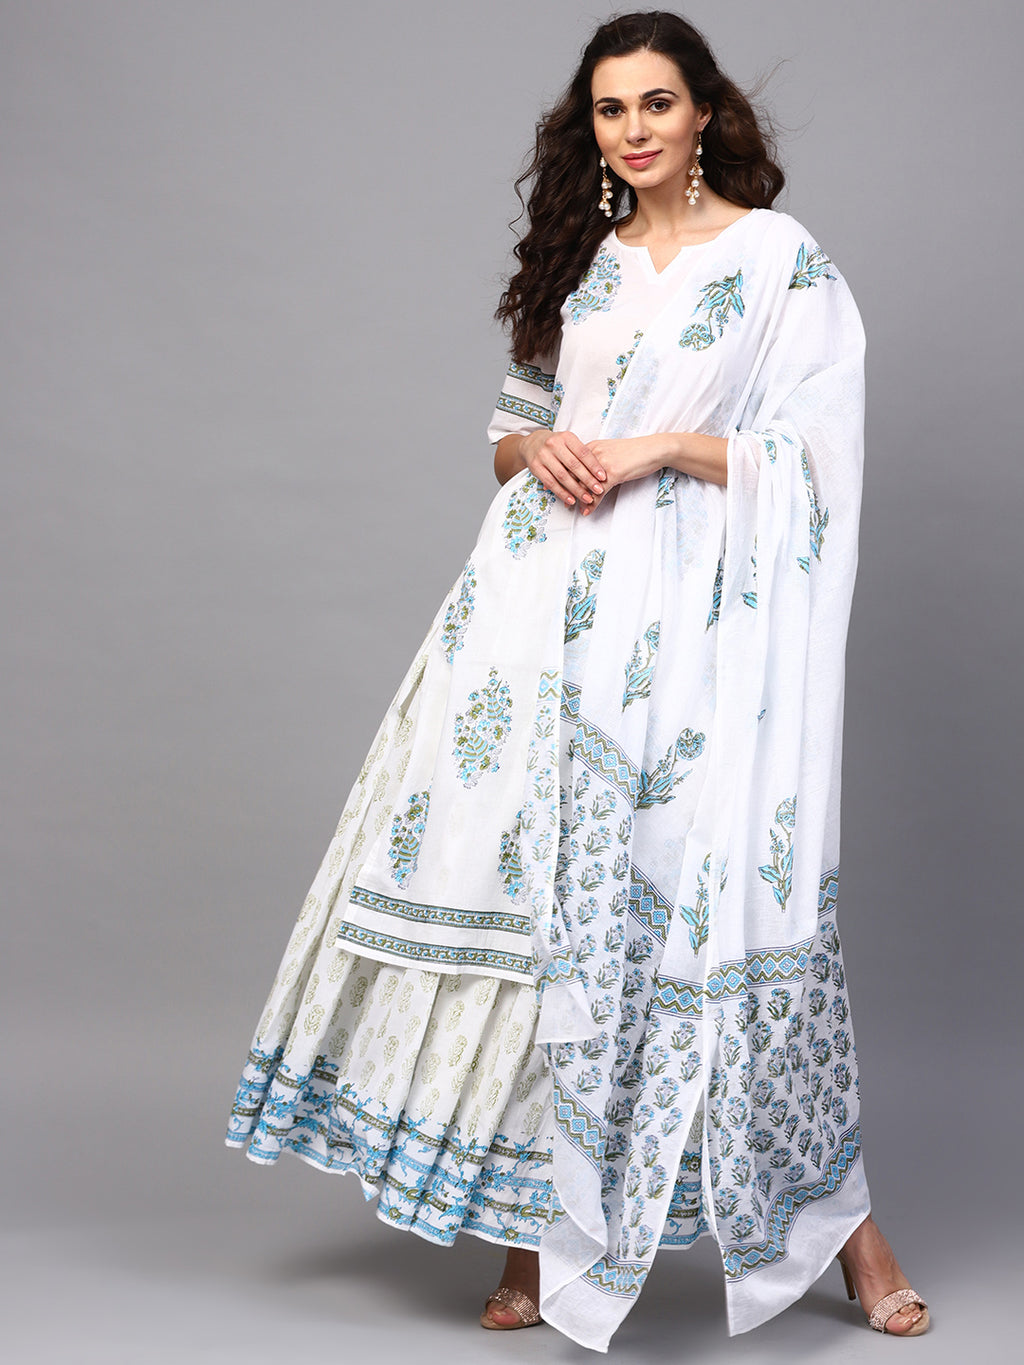 White & Blue Hand Block Printed Straight Kurta With Skirt & Dupatta Set (Fully Stitched) | Znx4ever.com